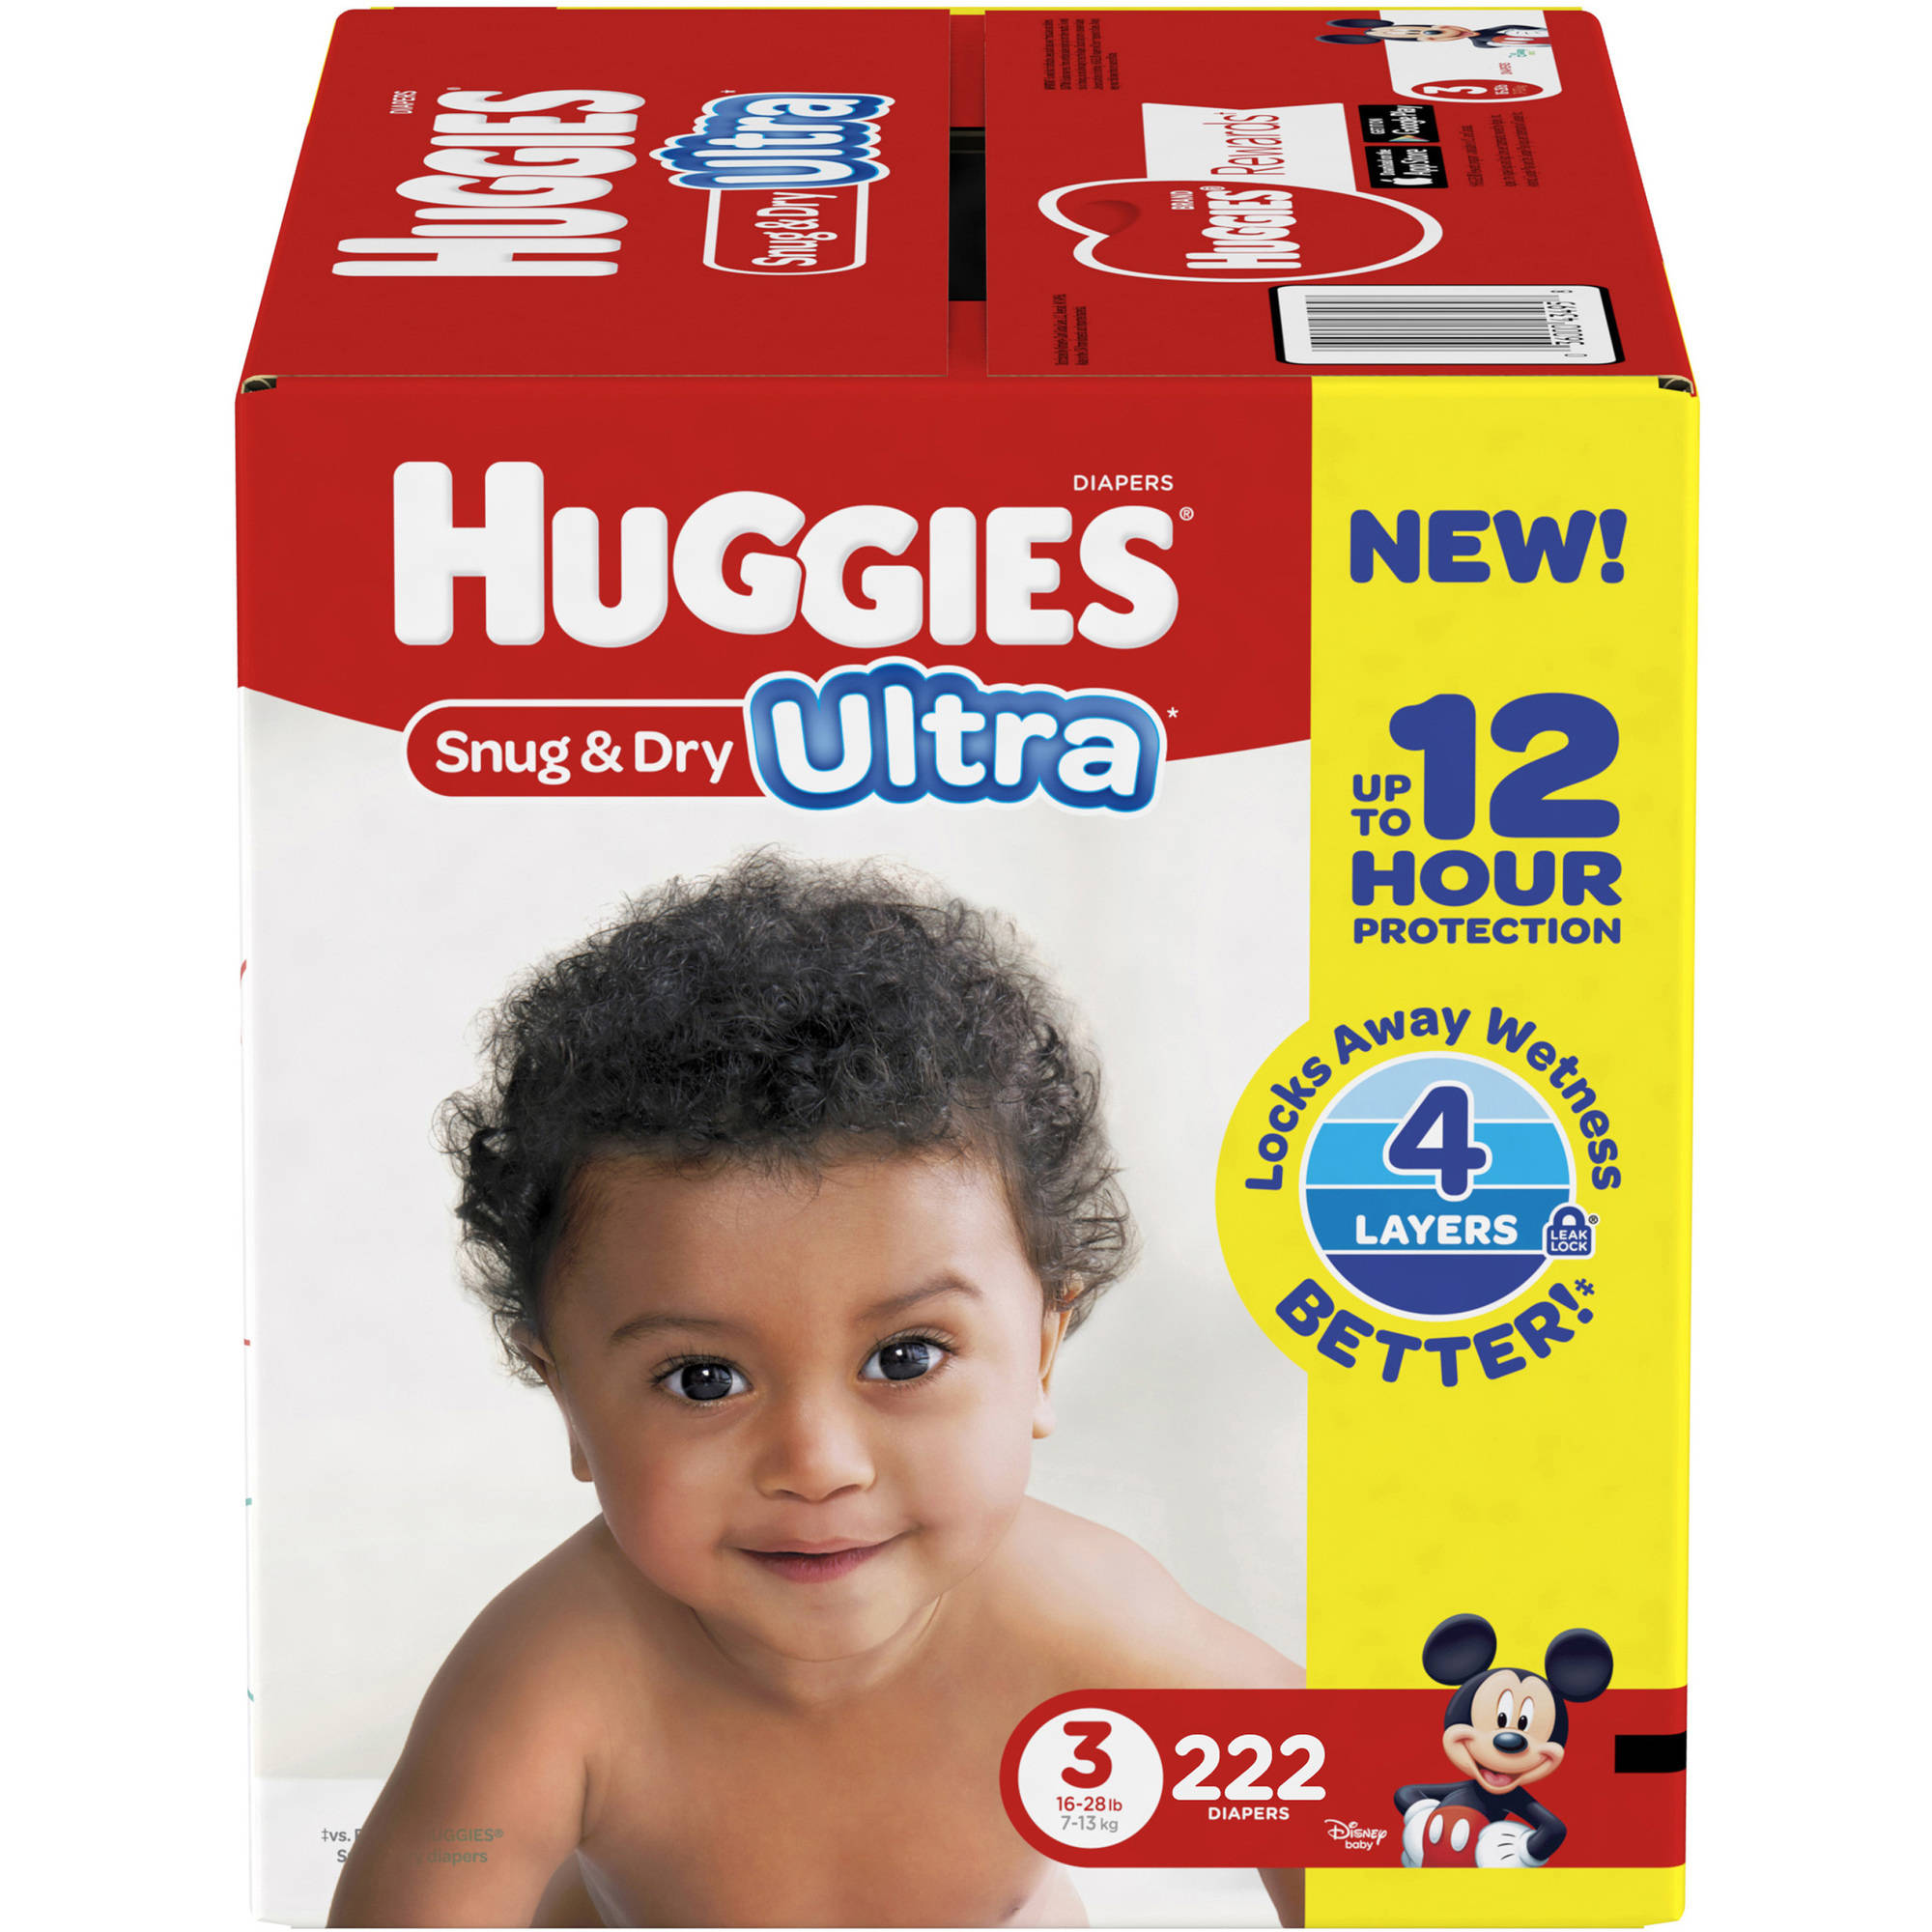 HUGGIES Snug & Dry Ultra Diapers, Size 3 (Choose Diaper Count)